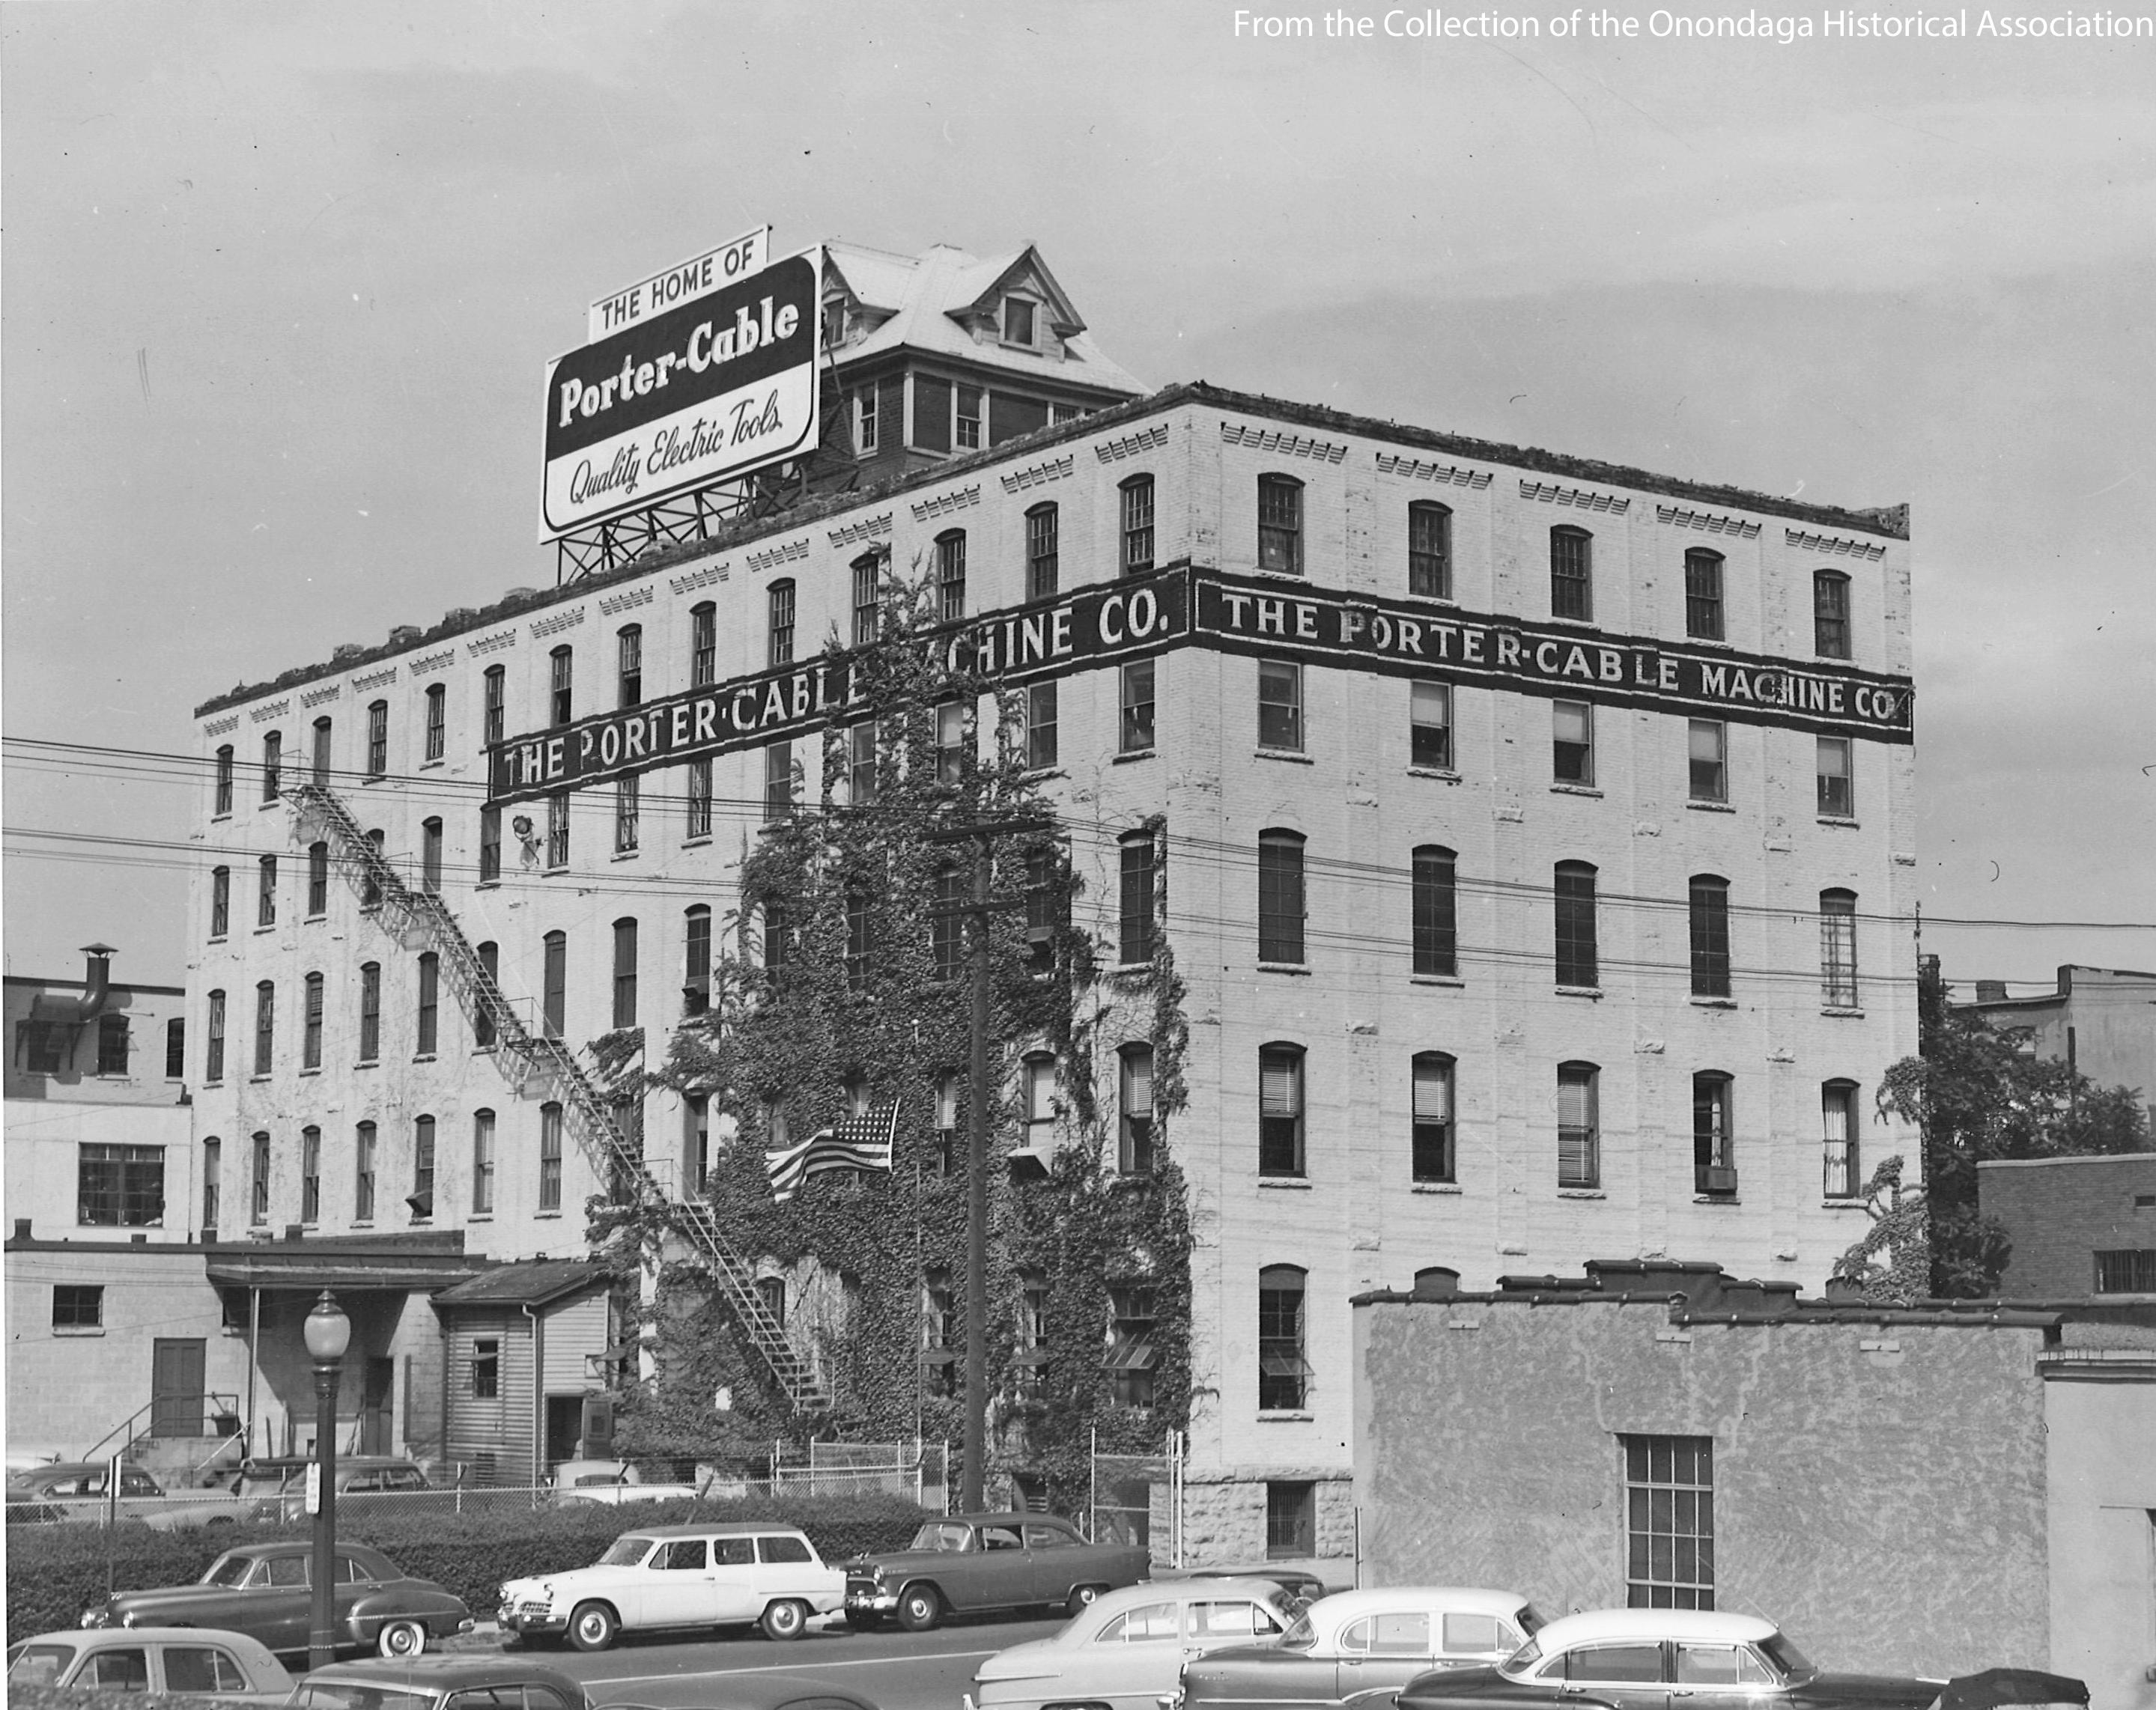 The Porter Cable Machine Company moved into the building in the first quarter of the 20th Century and remained until 1957 when Penfield moved in. (Onondaga Historical Association){&amp;nbsp;}<p></p>